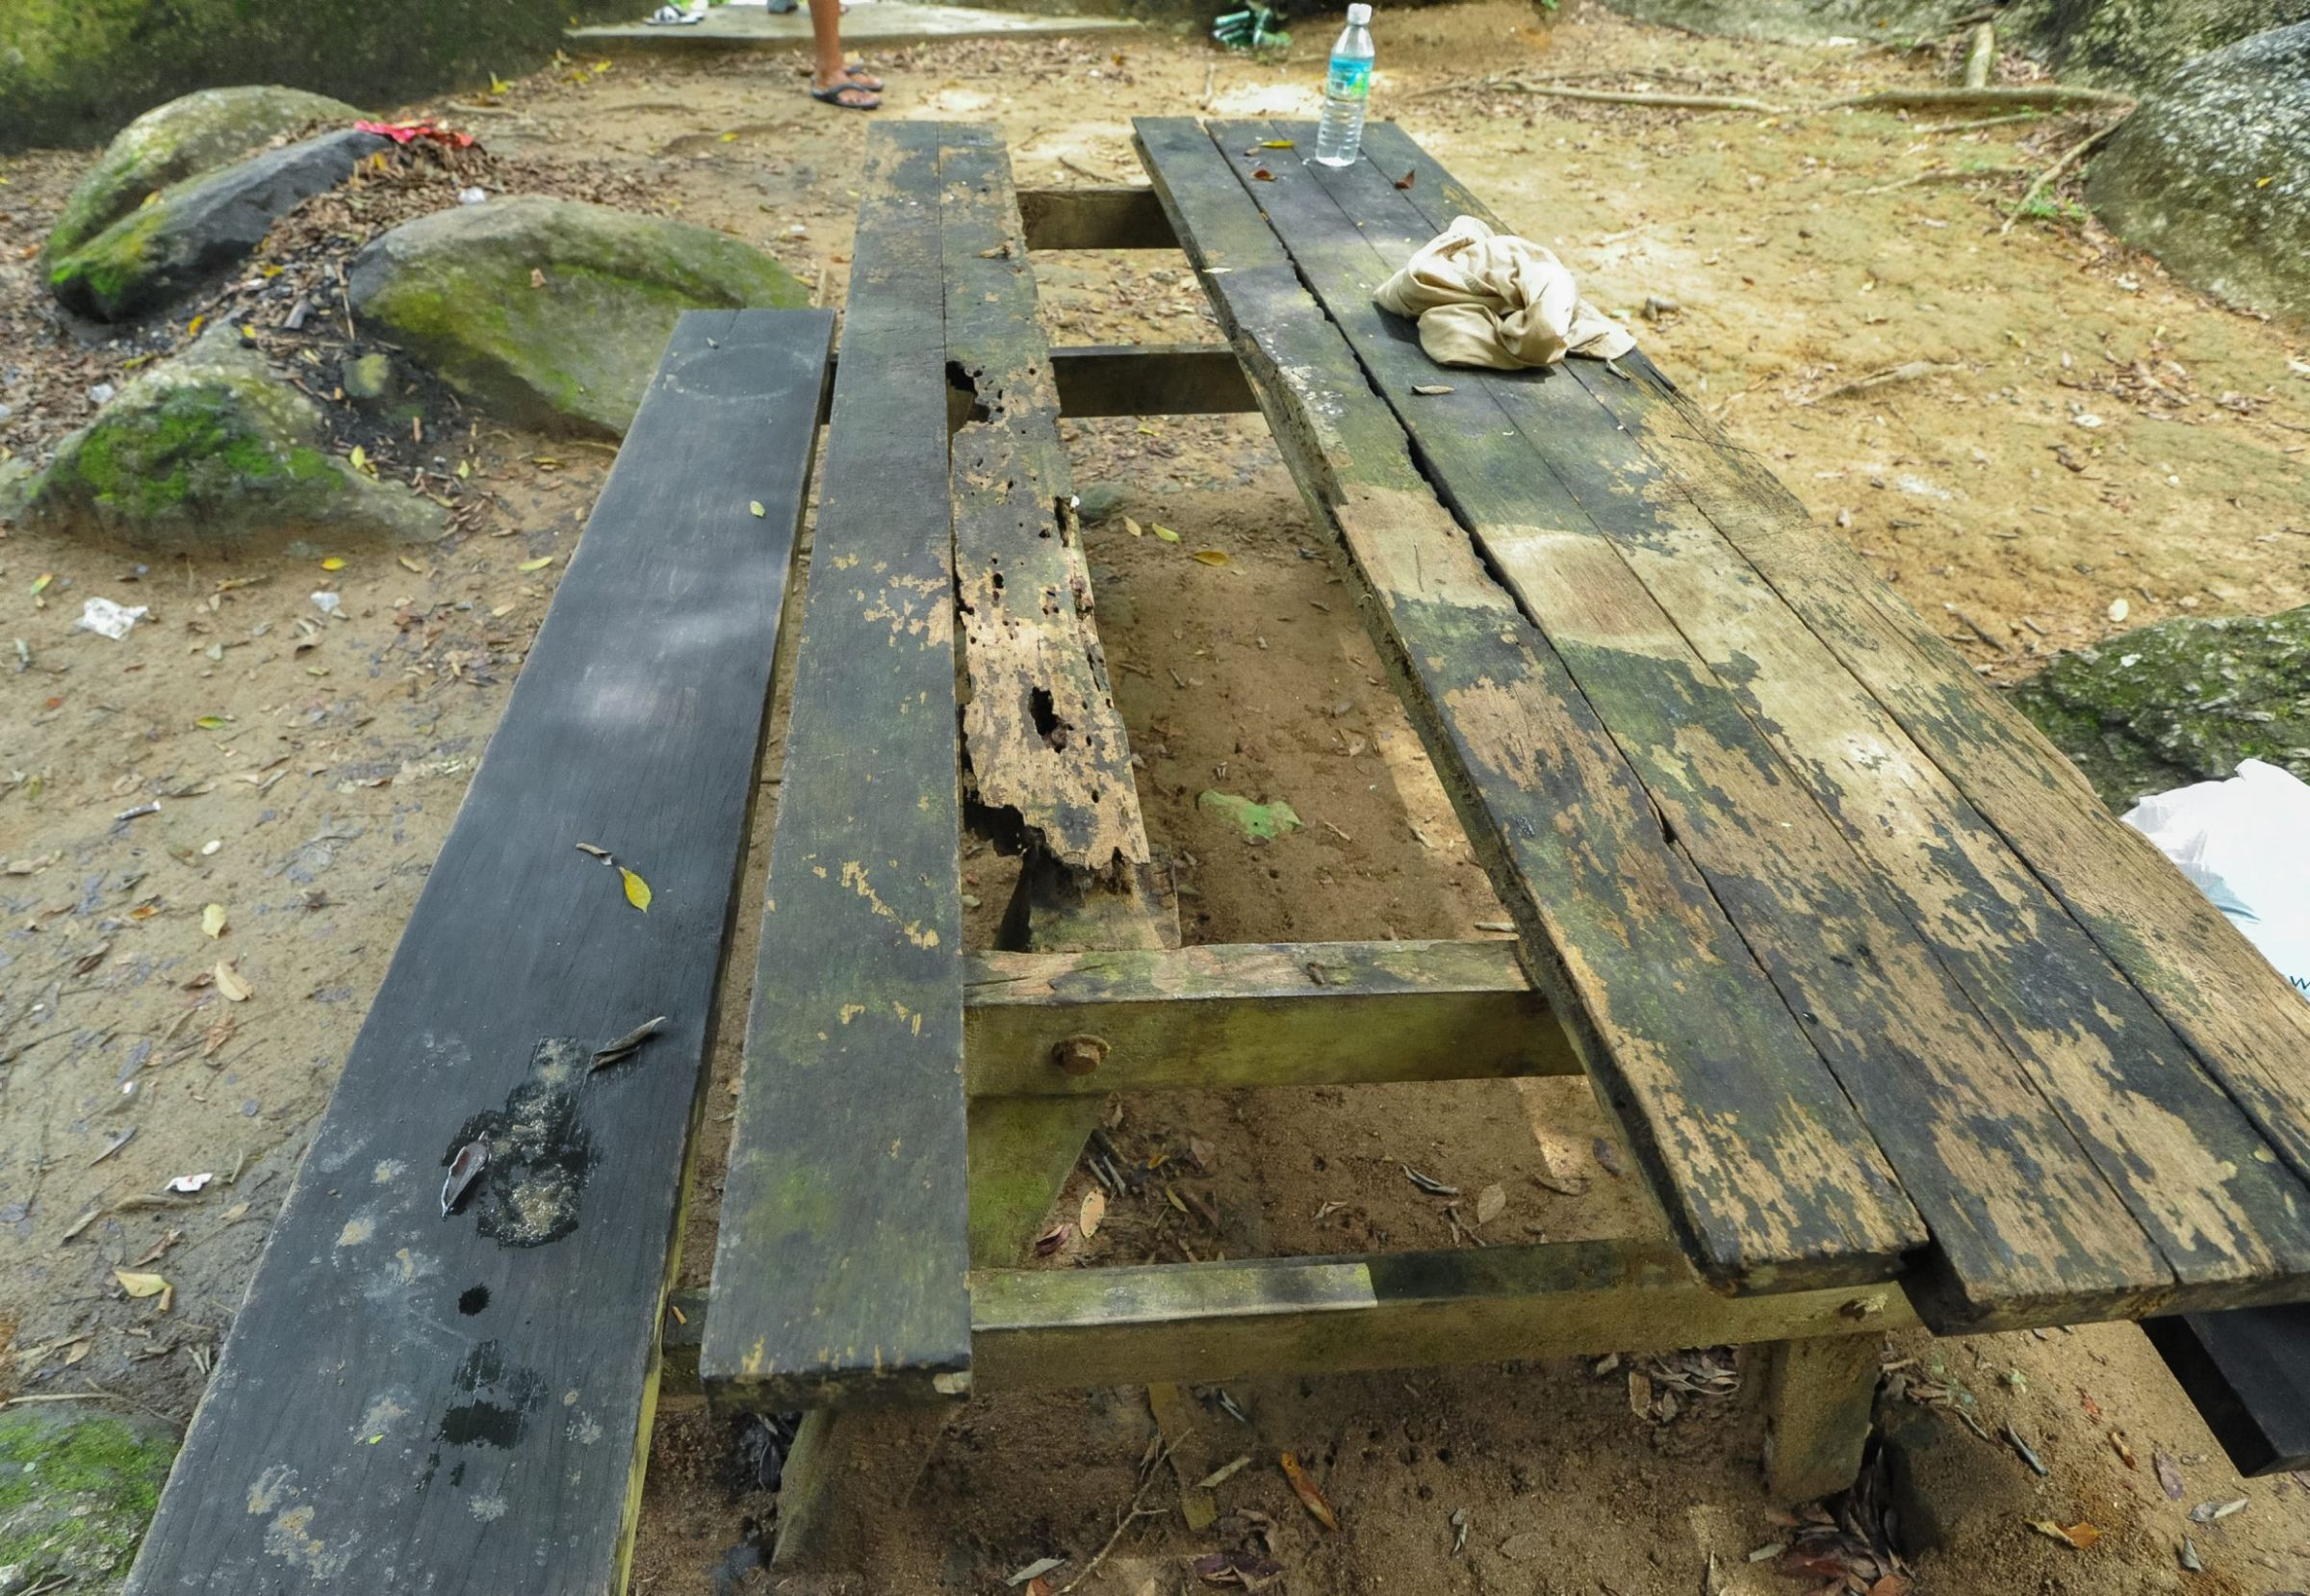 A broken and termite infested picnic table at the Hutan Lipur Lata Kekabu recreational park.